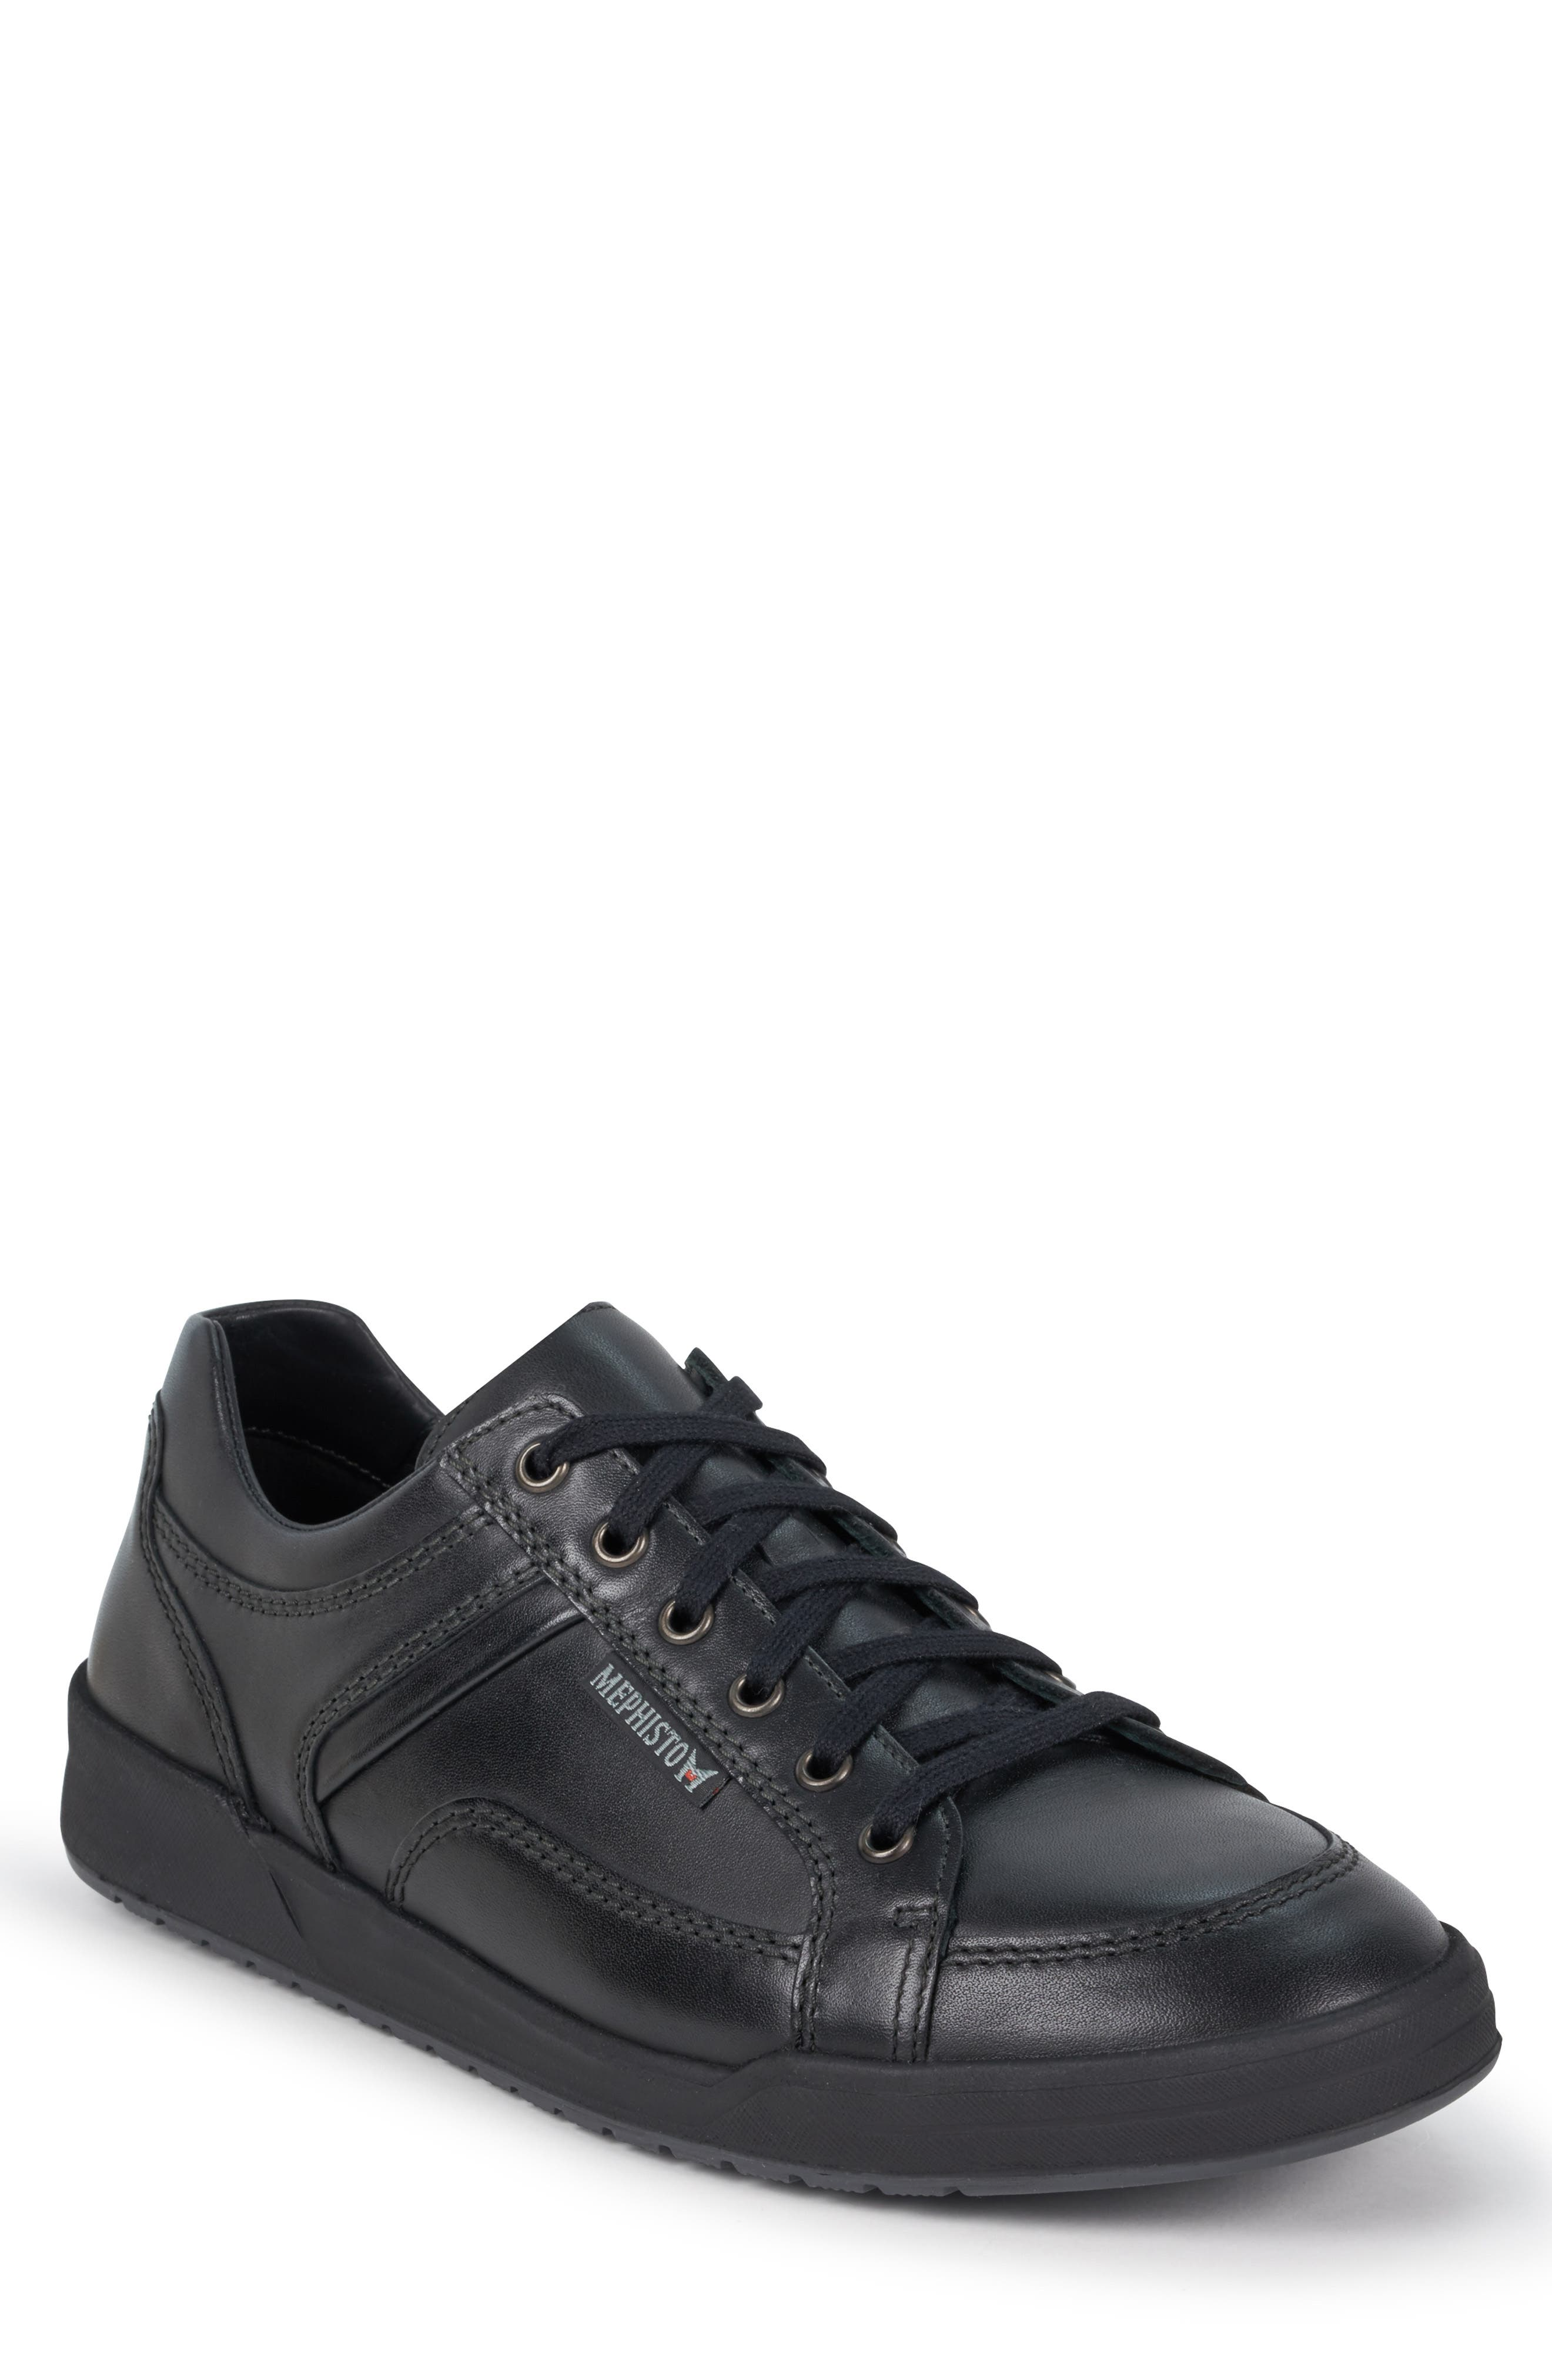 MEPHISTO, 'Rodrigo' Sneaker, Main thumbnail 1, color, BLACK/BLACK LEATHER